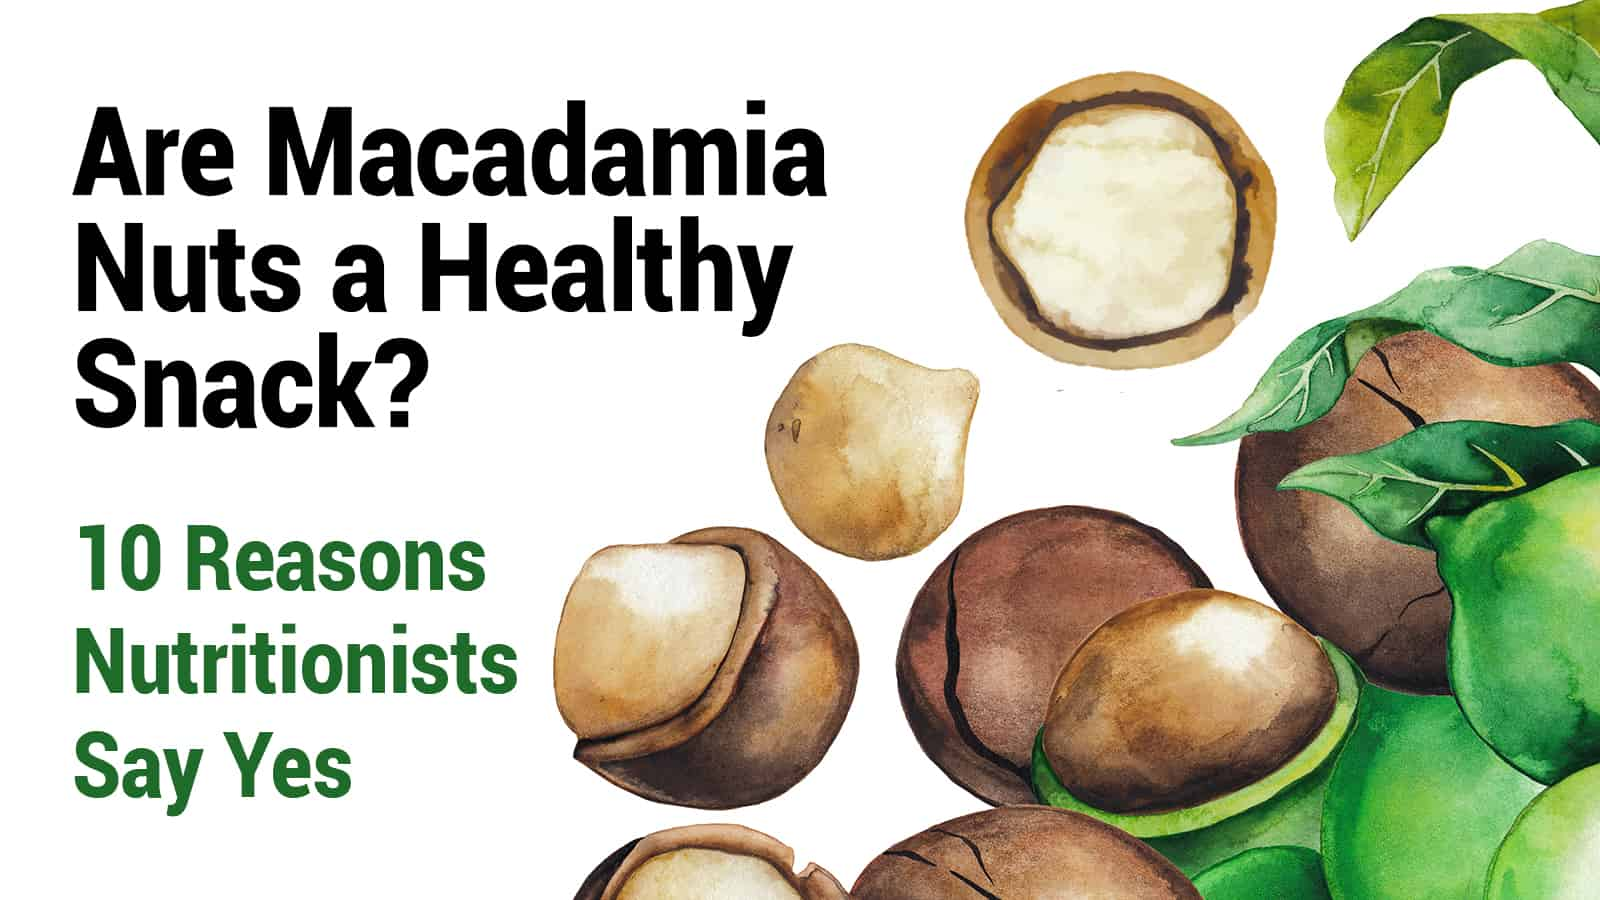 Are Macadamia Nuts A Healthy Snack 10 Reasons Nutritionists Say Yes